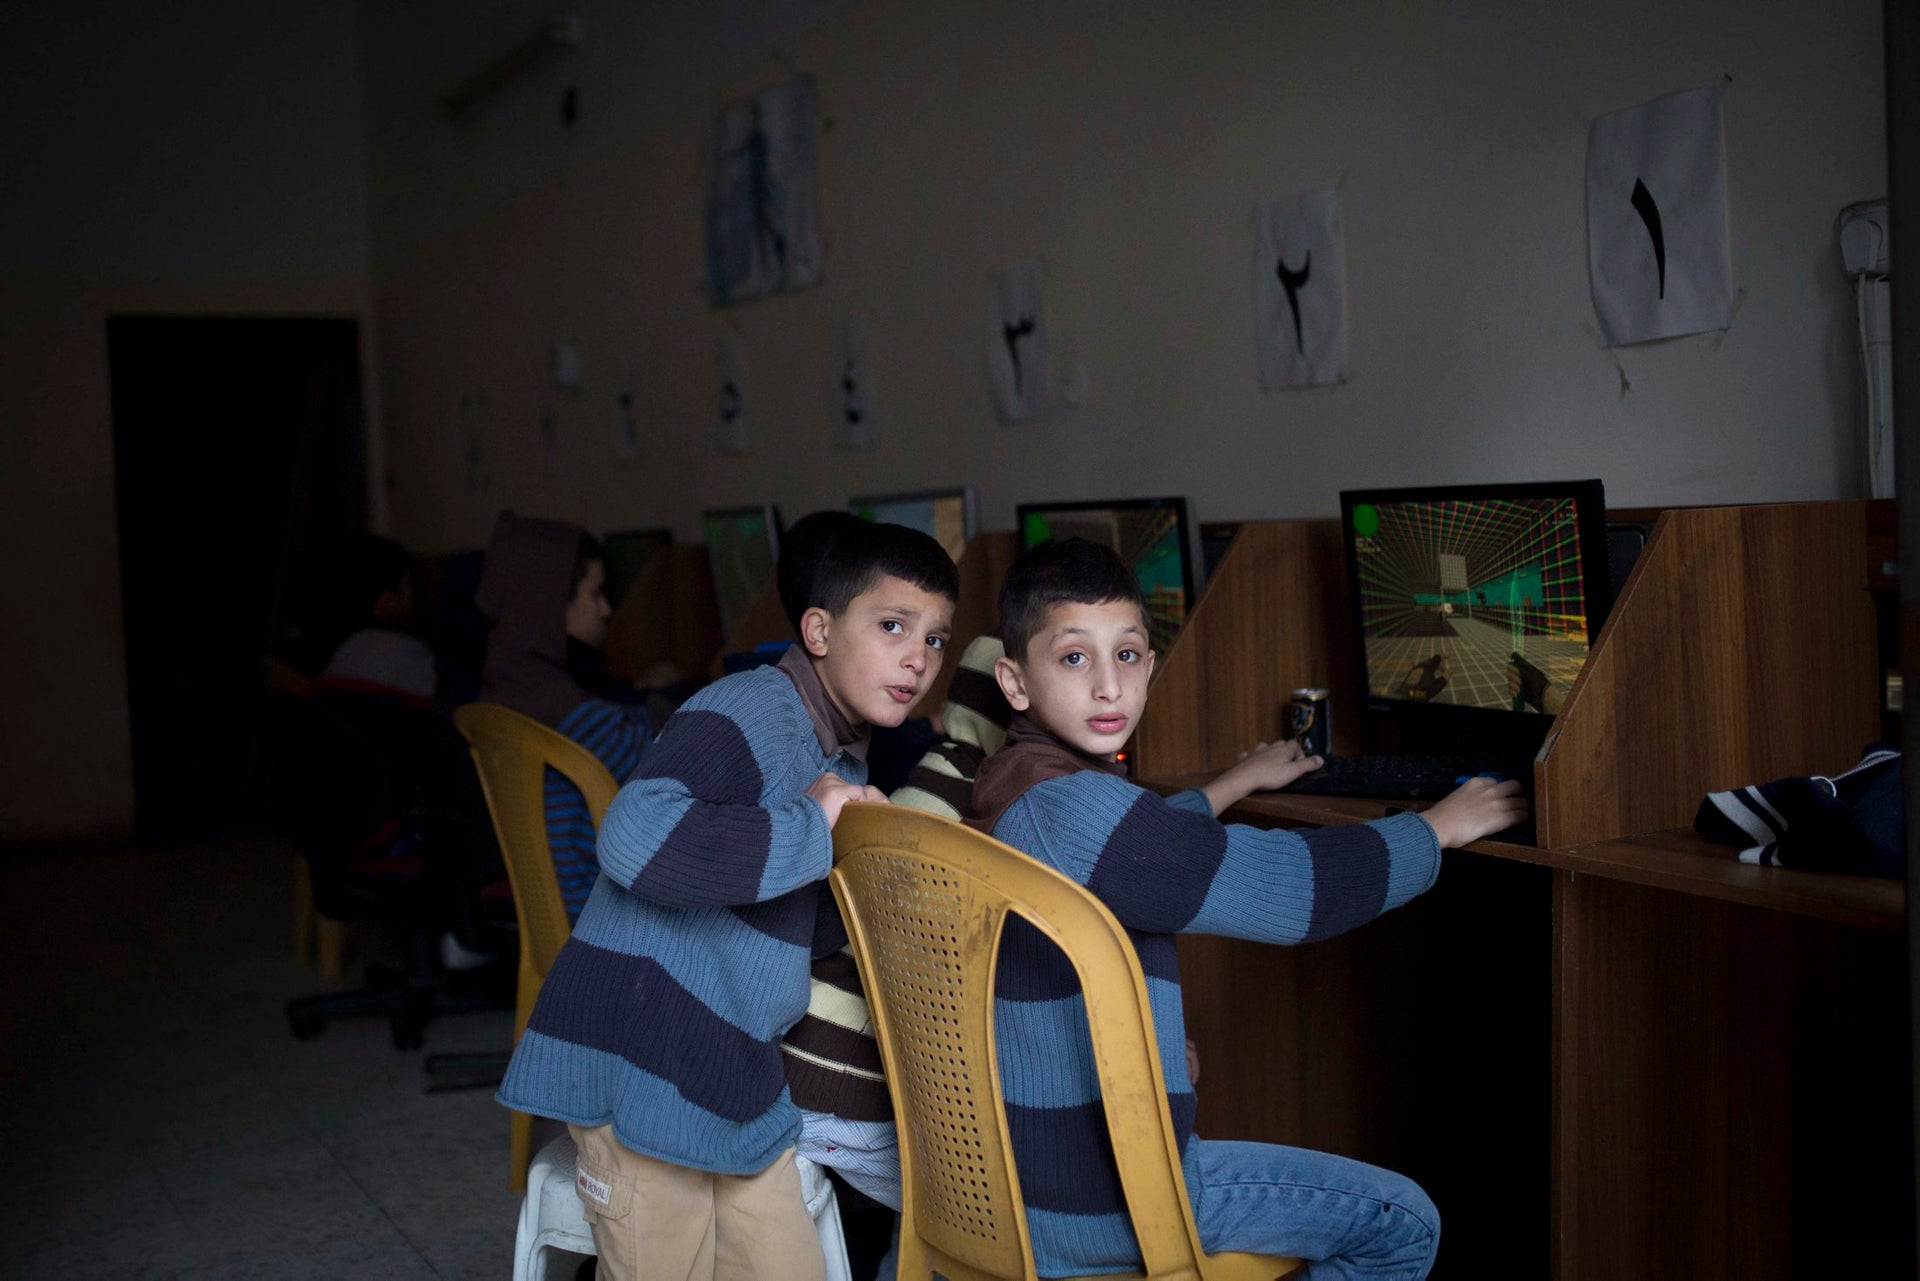 Children at a youth center in Shoafat.